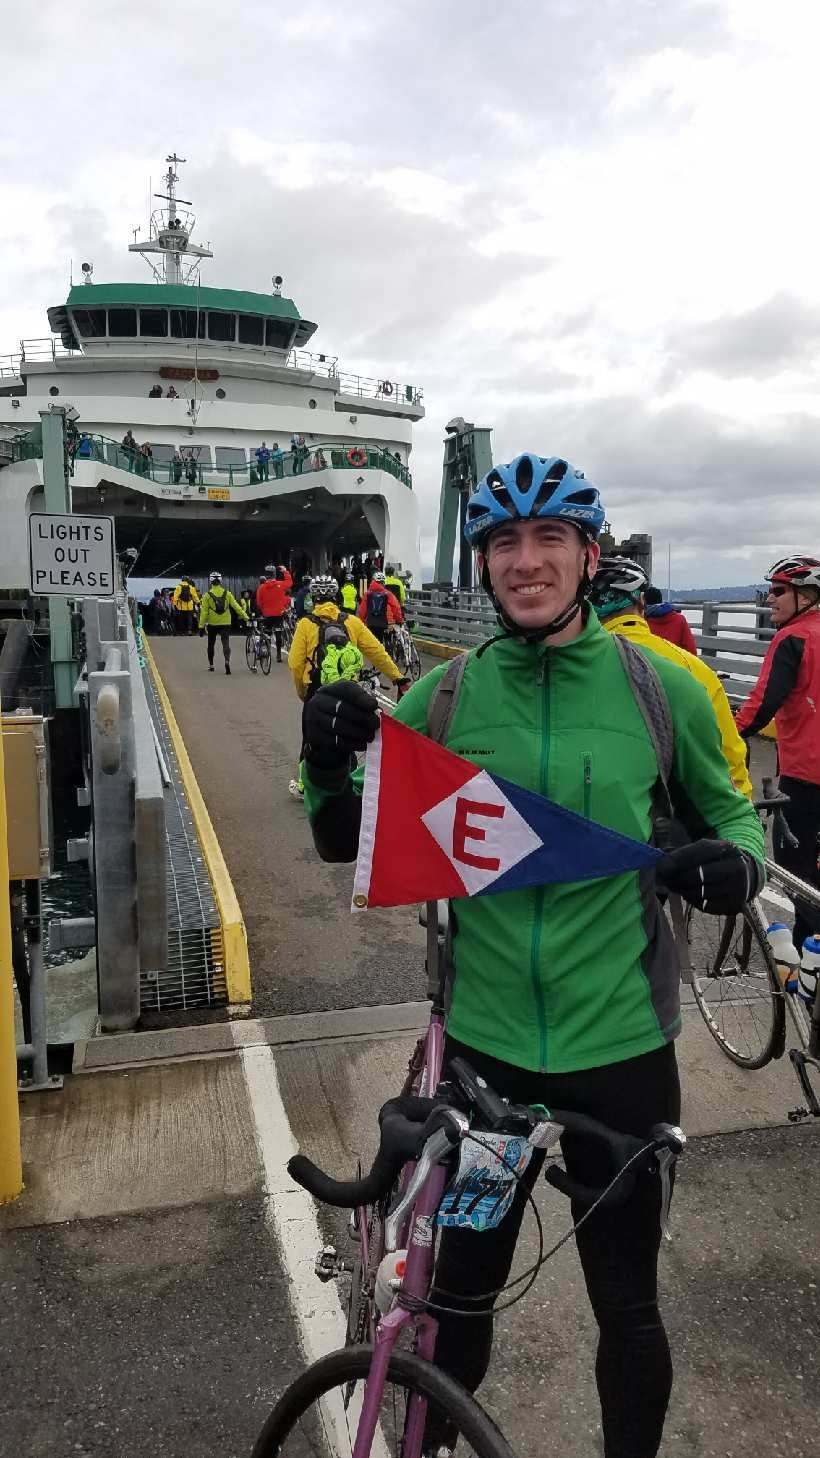 Langdon Junge takes his EYC burgee on the Chilly Hilly bike race on Bainbridge Island, WA.